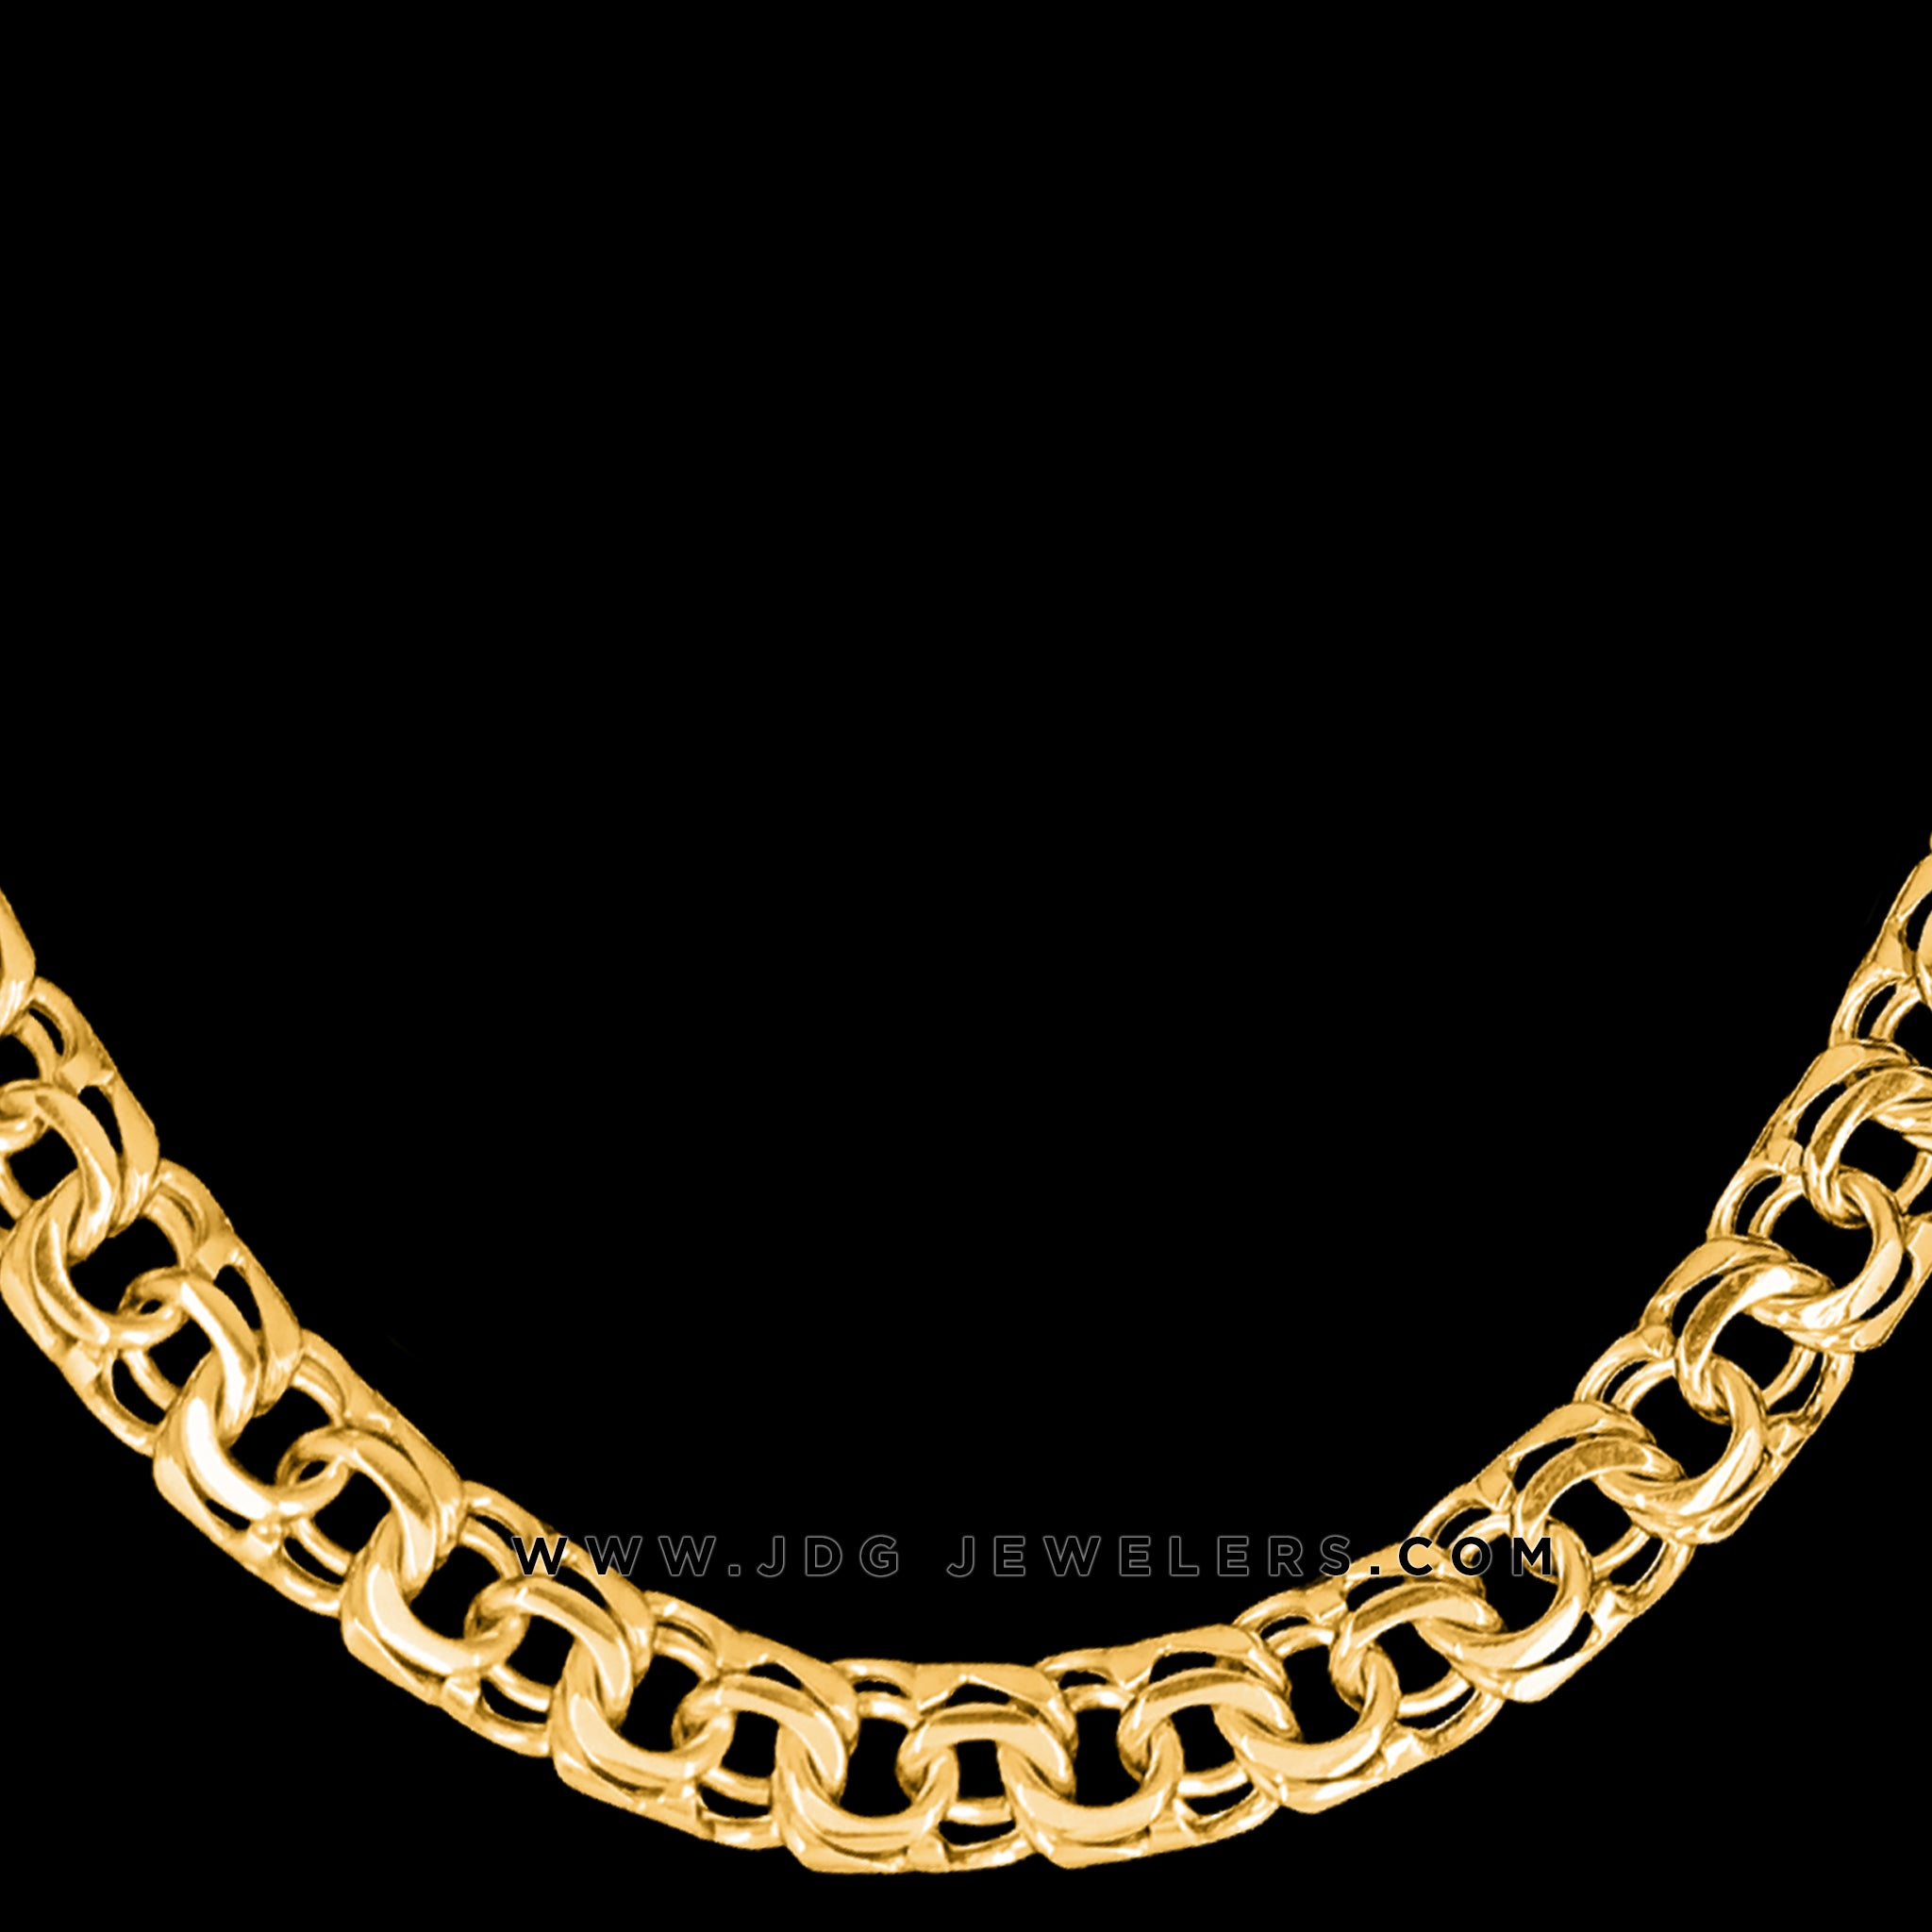 250.0 GR Chino Link Chain with FREE Initials